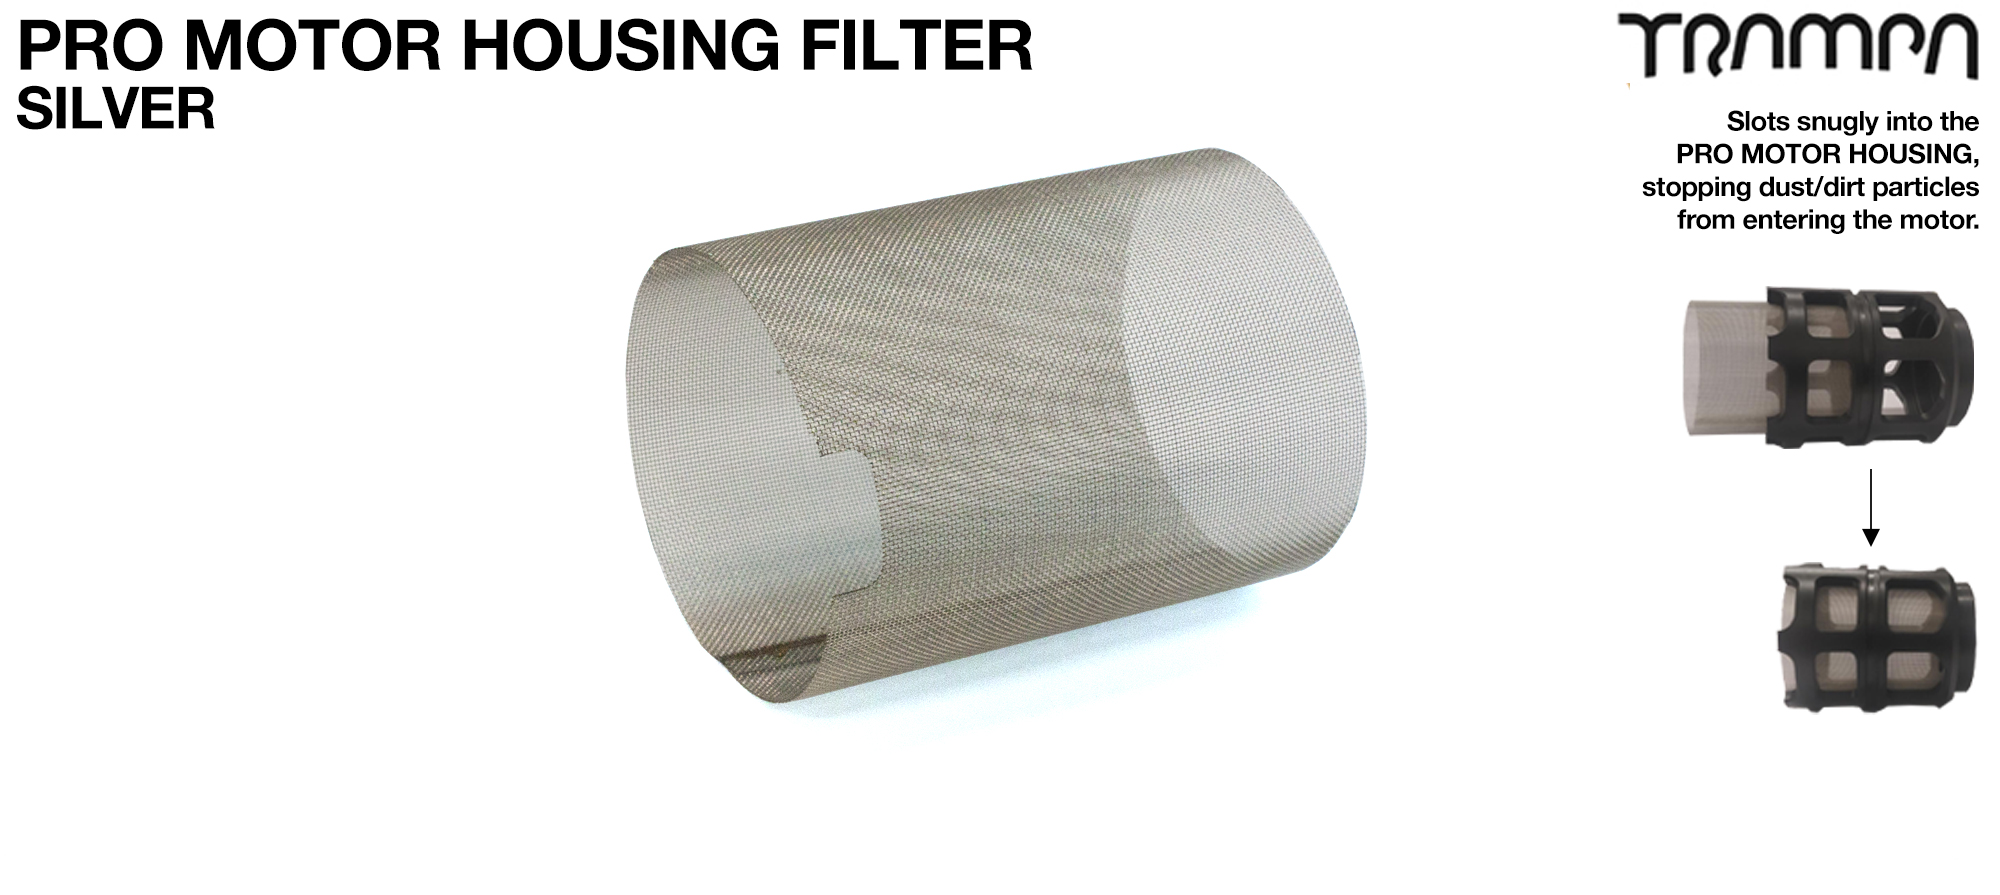 MkII Motor protection Cover MESH FILTER - SILVER